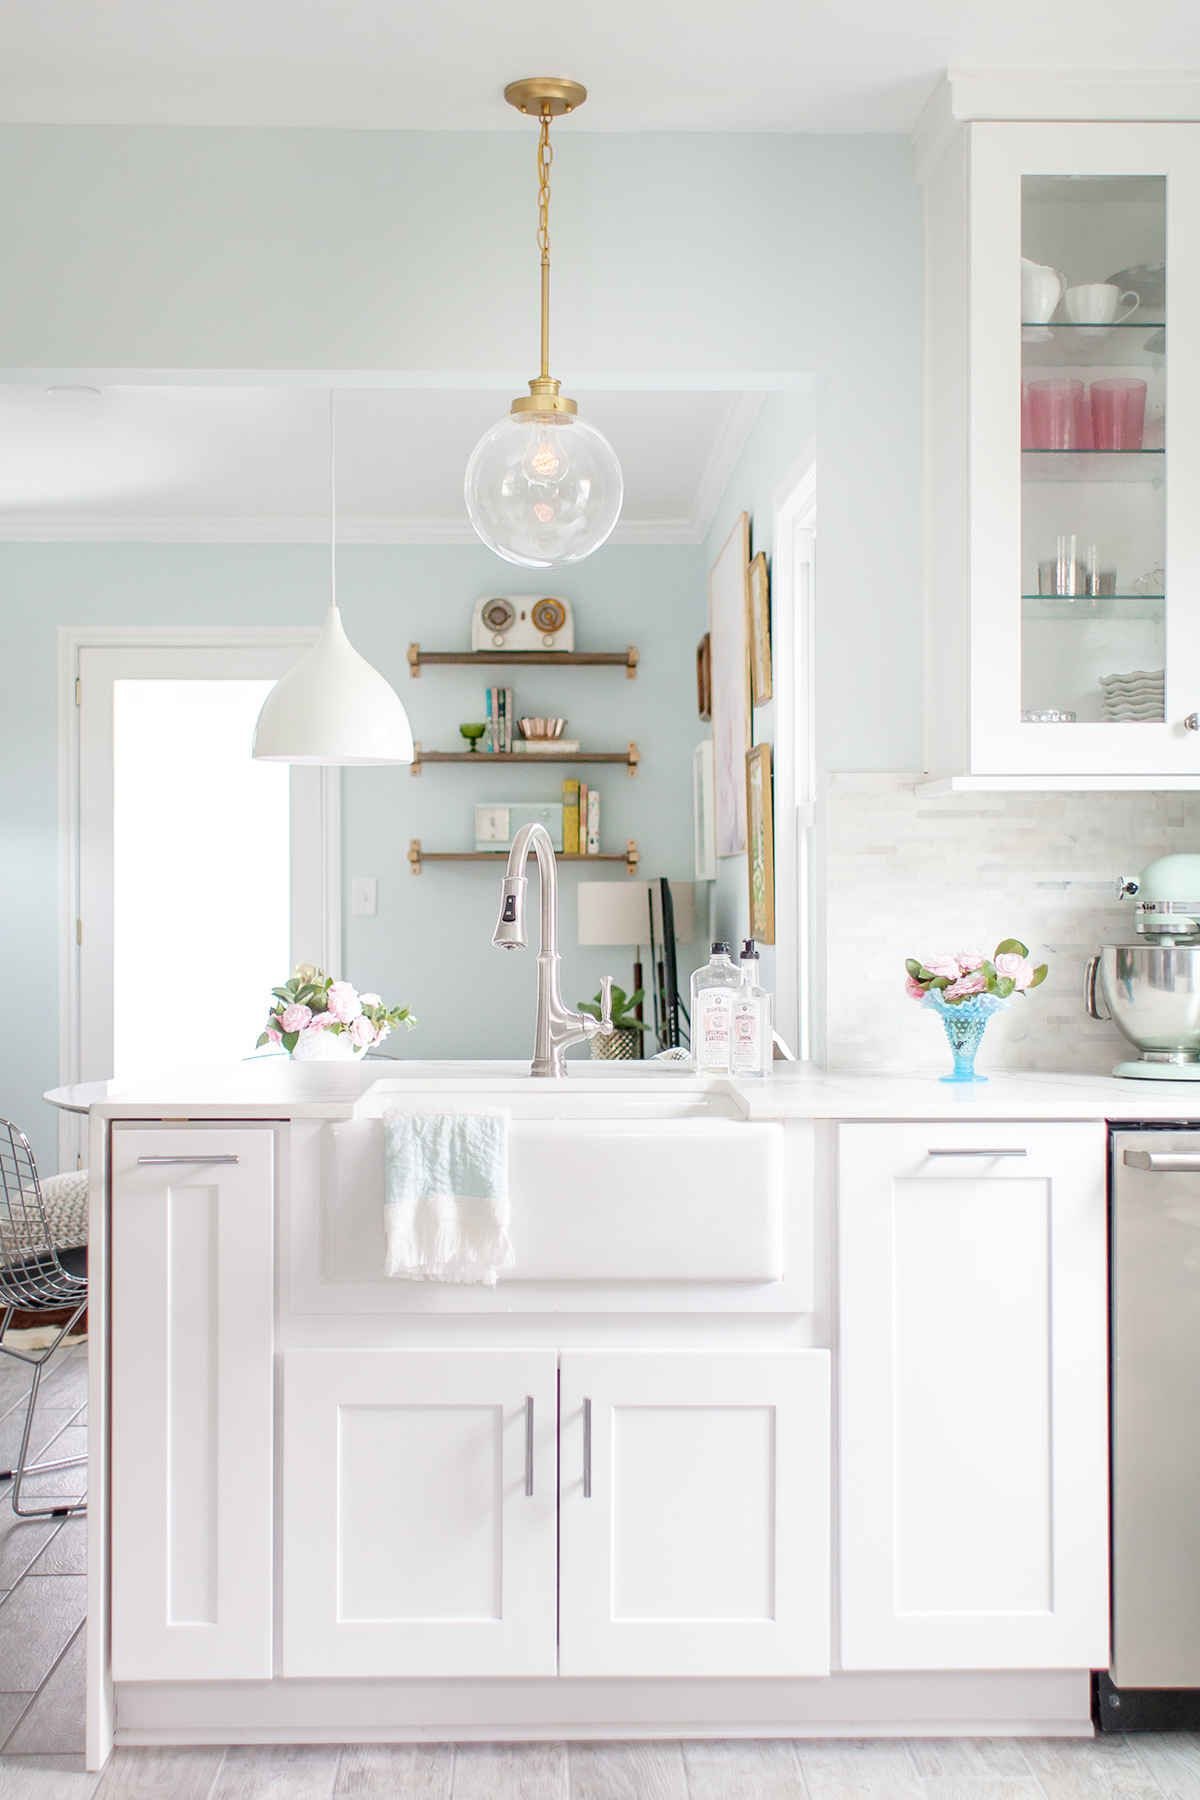 Our New Kitchen Reveal with the Home Depot | Diseño de cocina ...